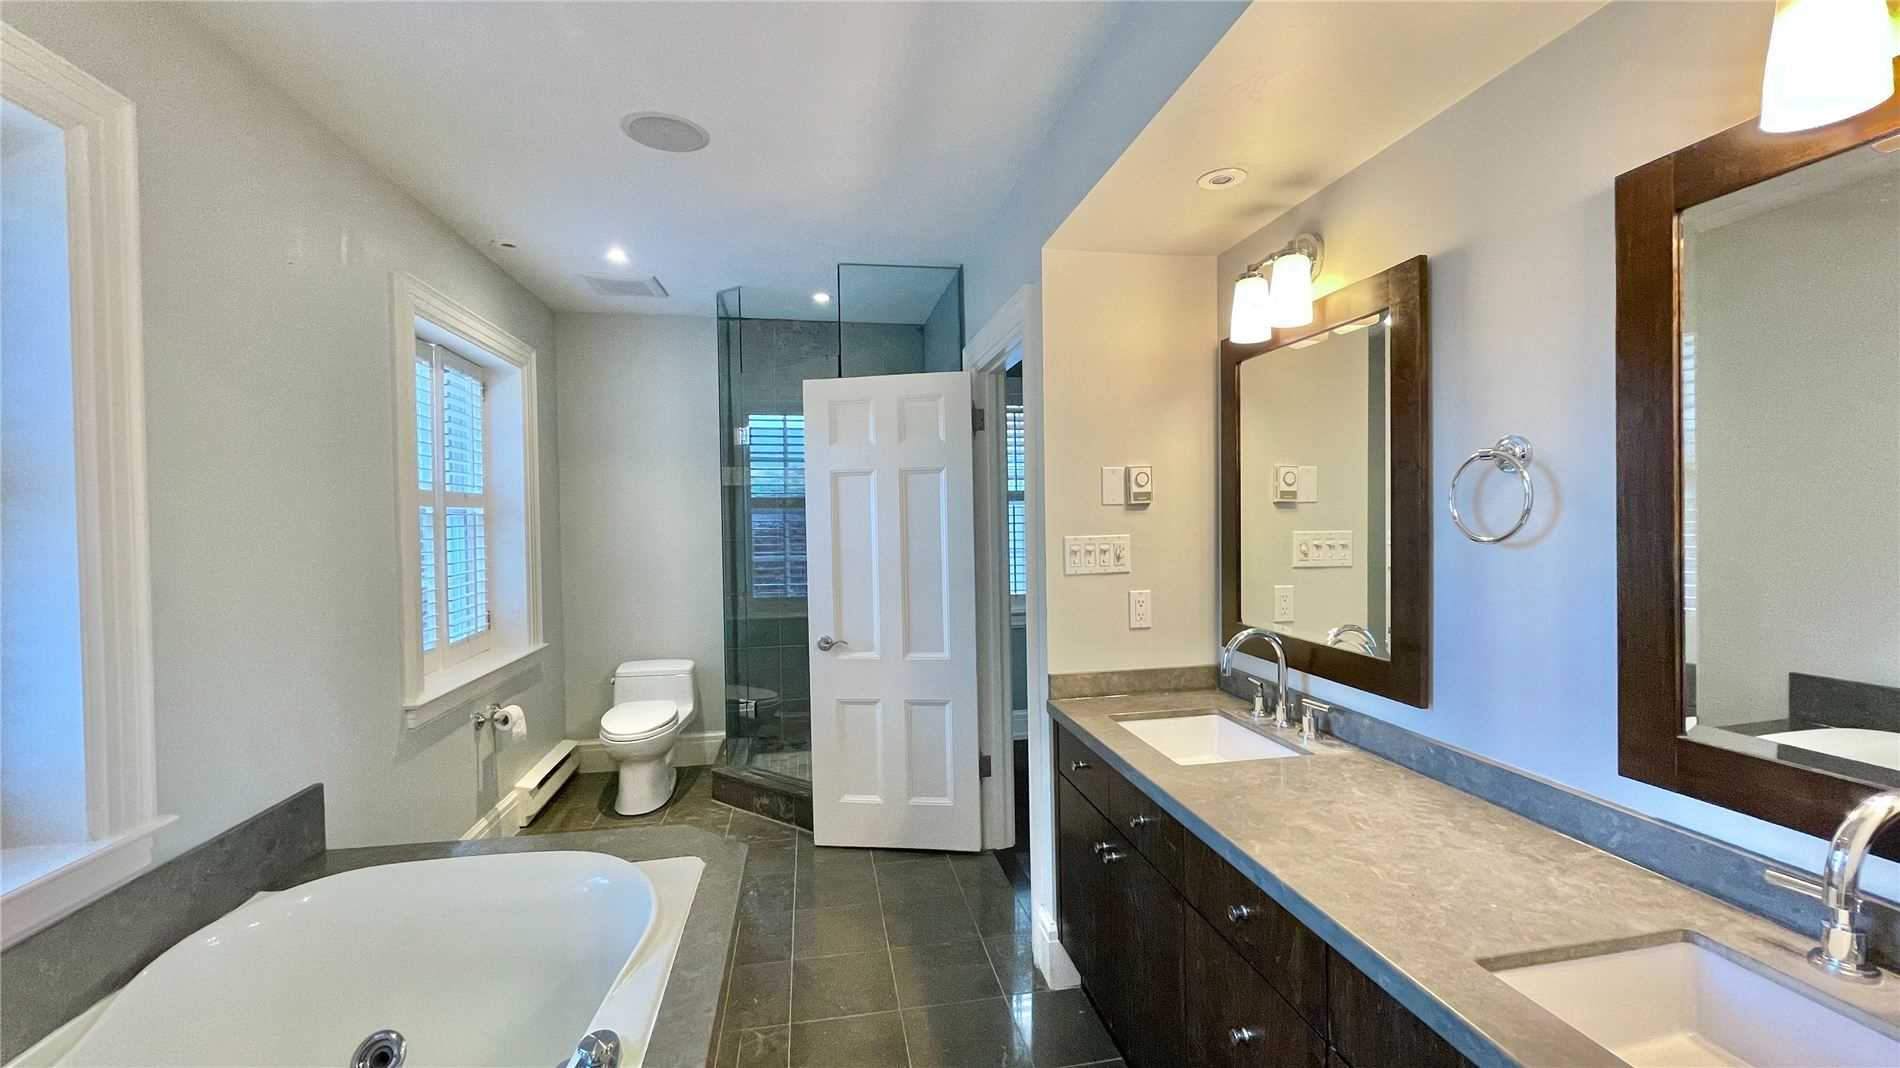 Detached house For Sale In Toronto - 8 Highland Cres, Toronto, Ontario, Canada M4W2S7 , 5 Bedrooms Bedrooms, ,5 BathroomsBathrooms,Detached,For Sale,Highland